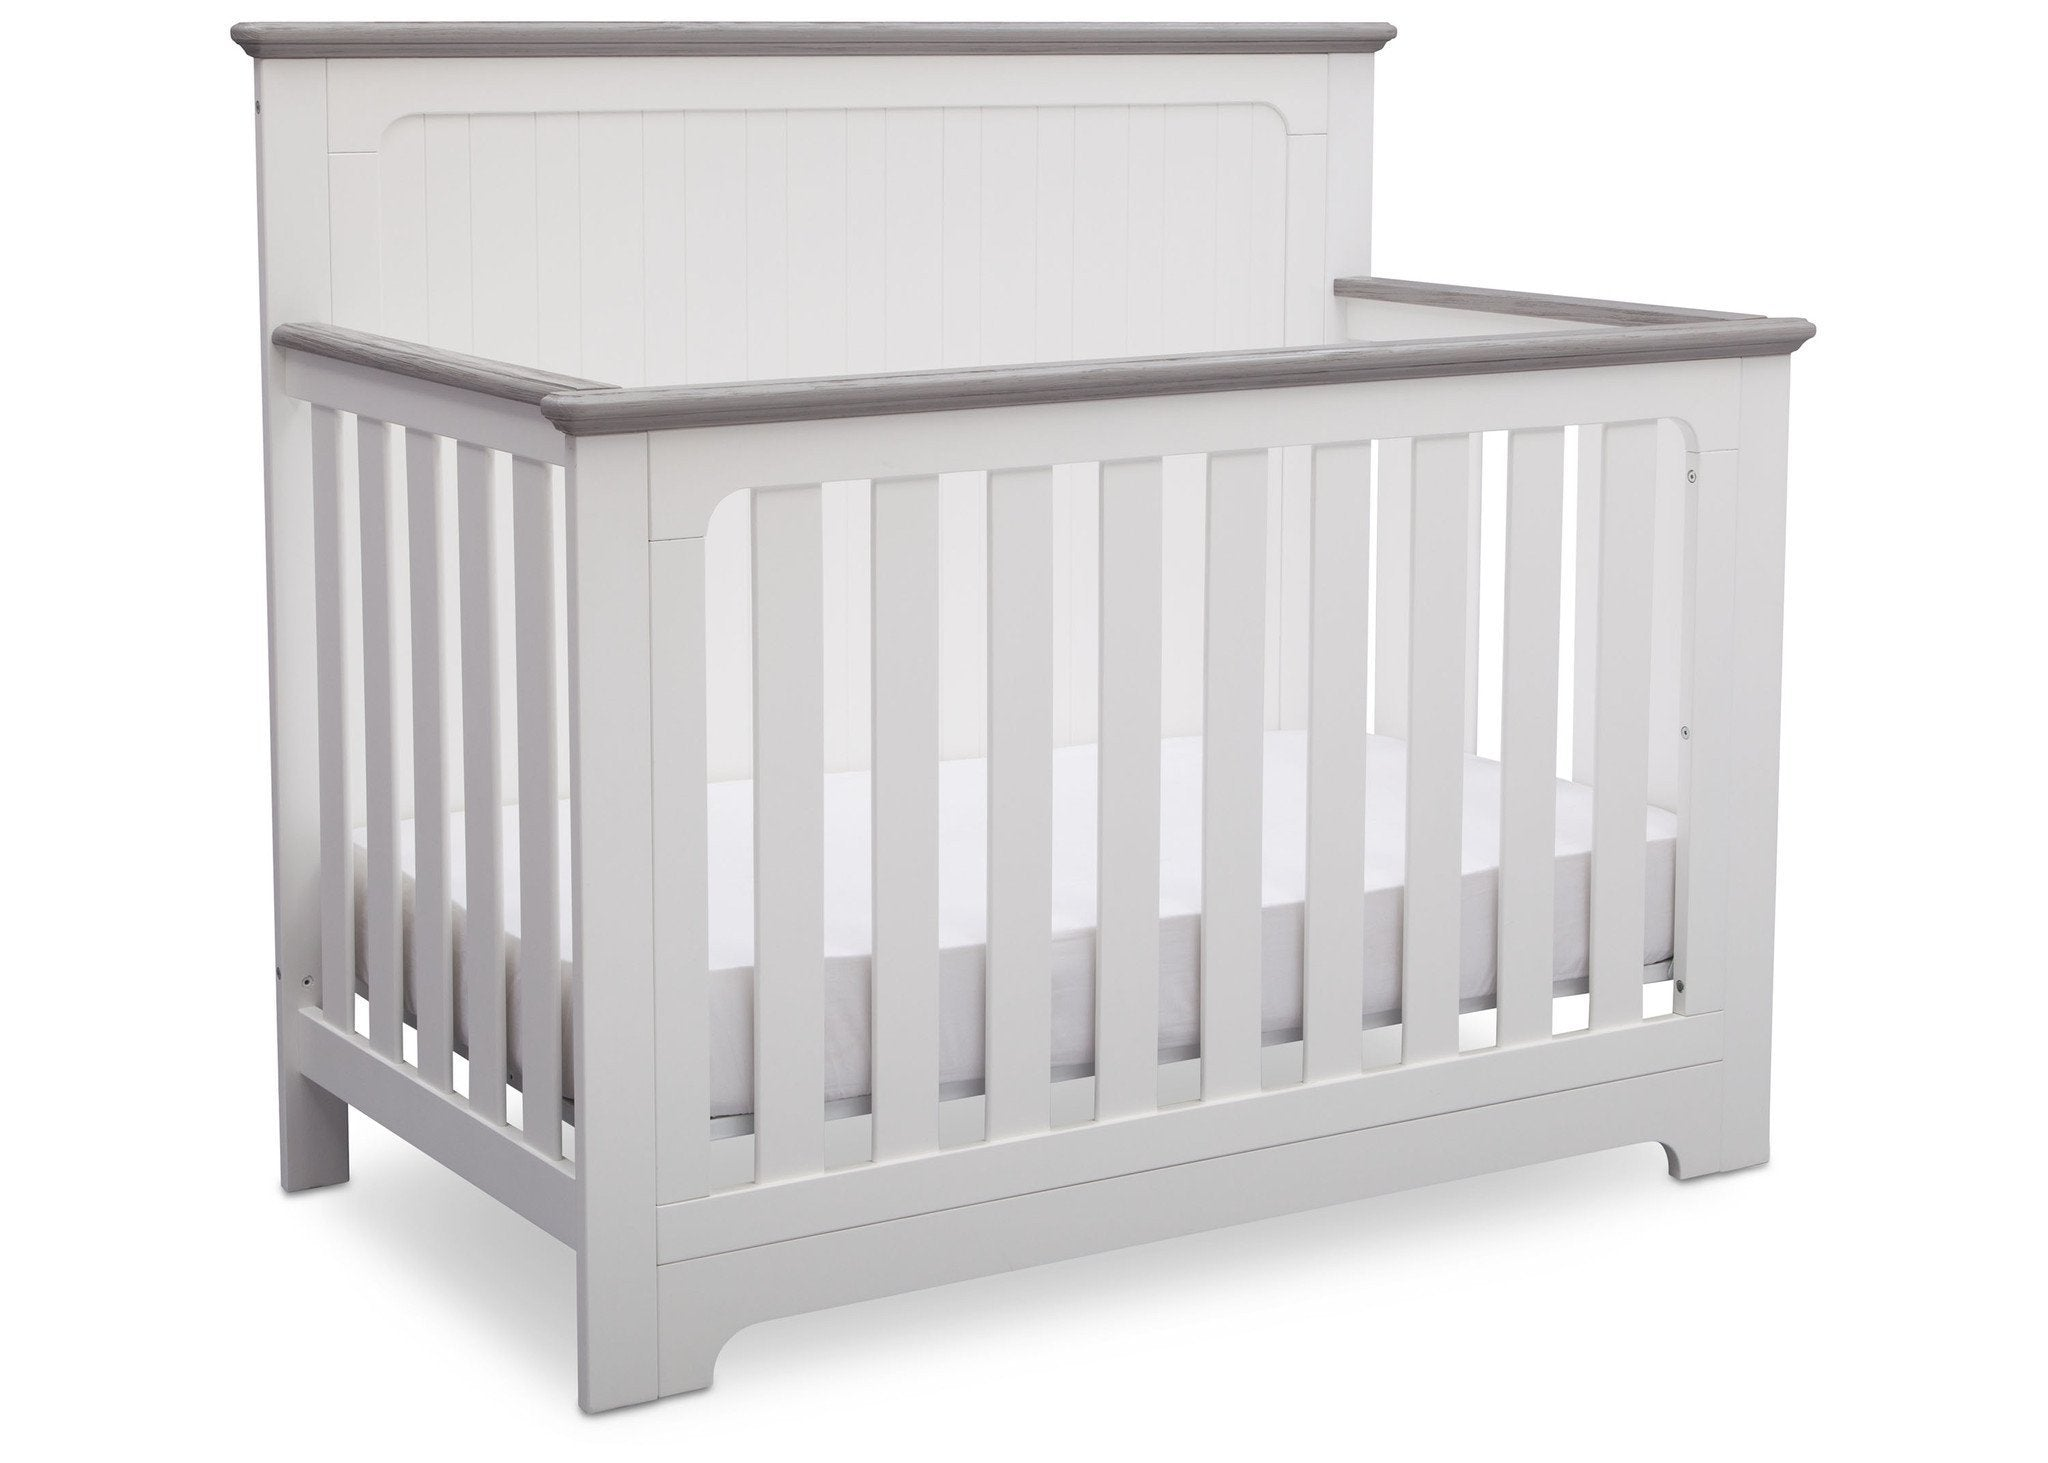 Delta Children Bianca with Rustic Haze (136) Providence 4-in-1 Crib, Angled View b4b